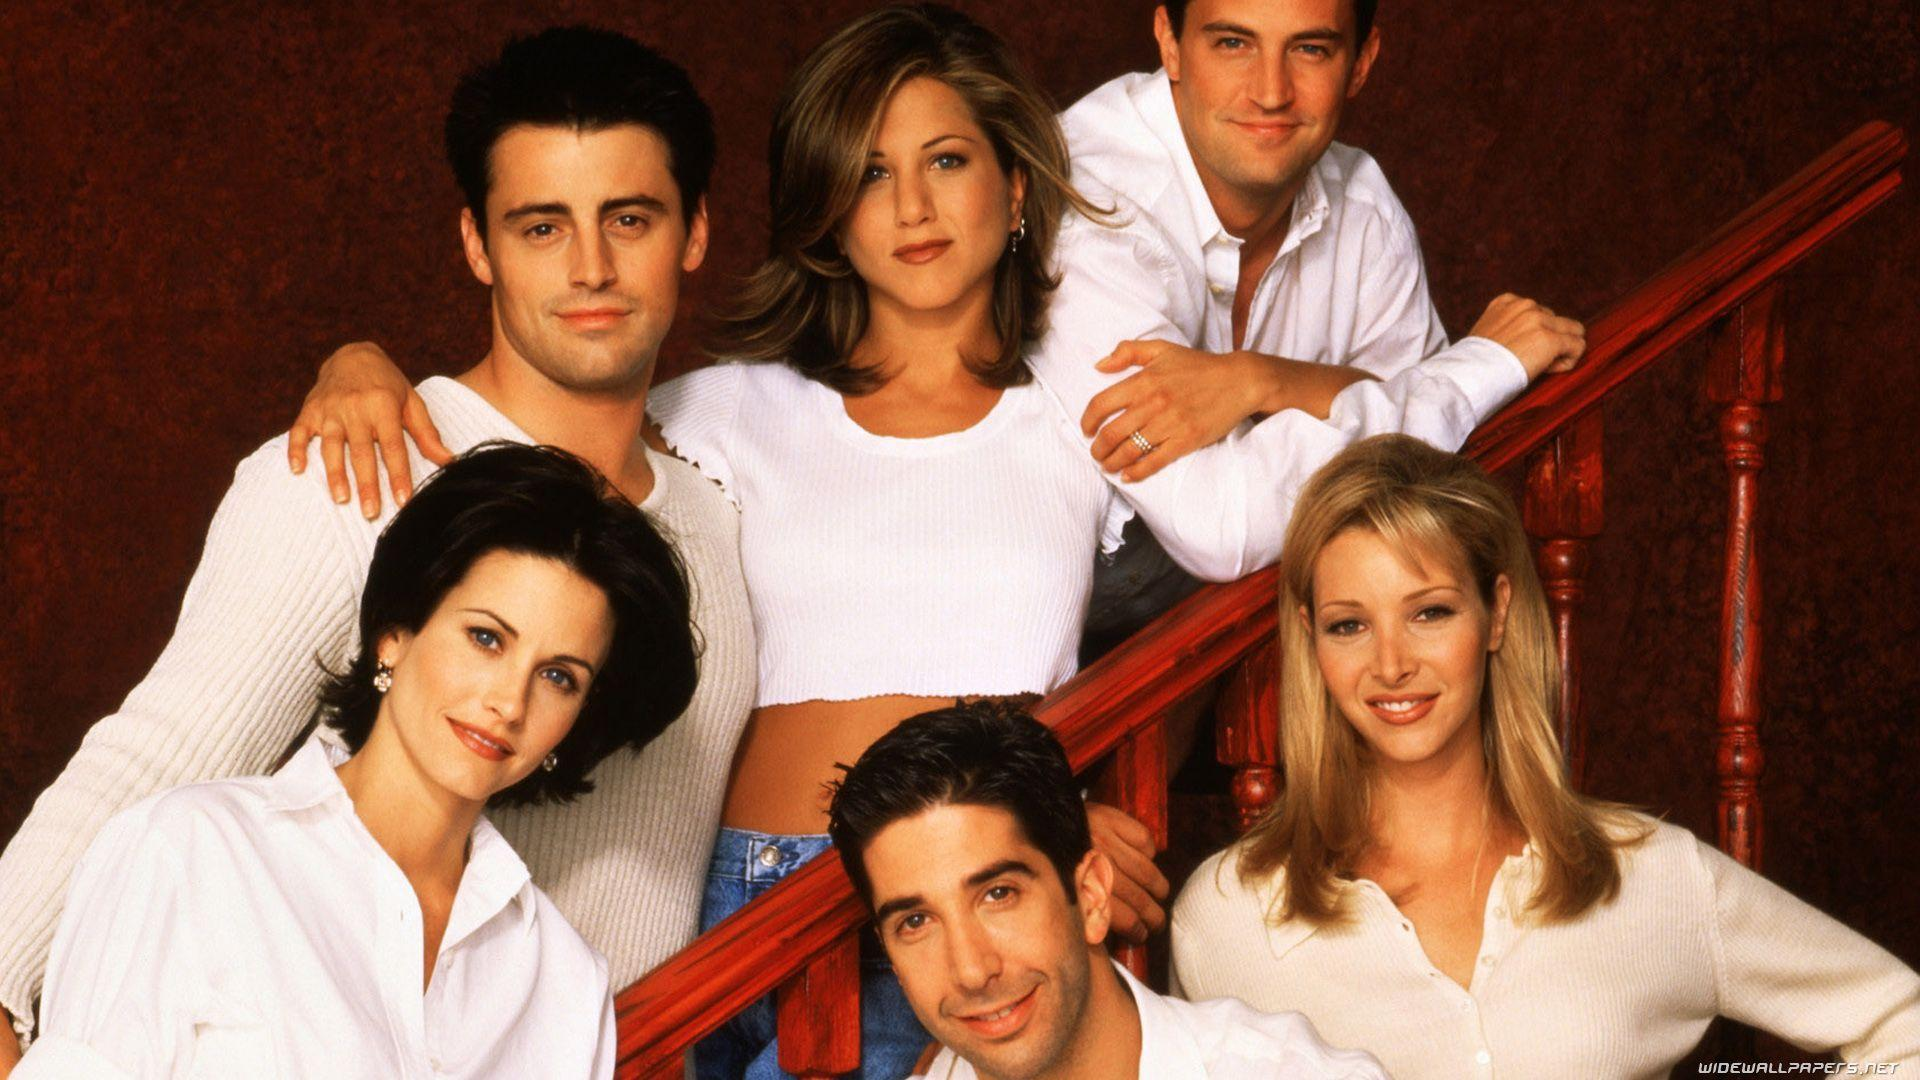 friends tv show wallpapers hd